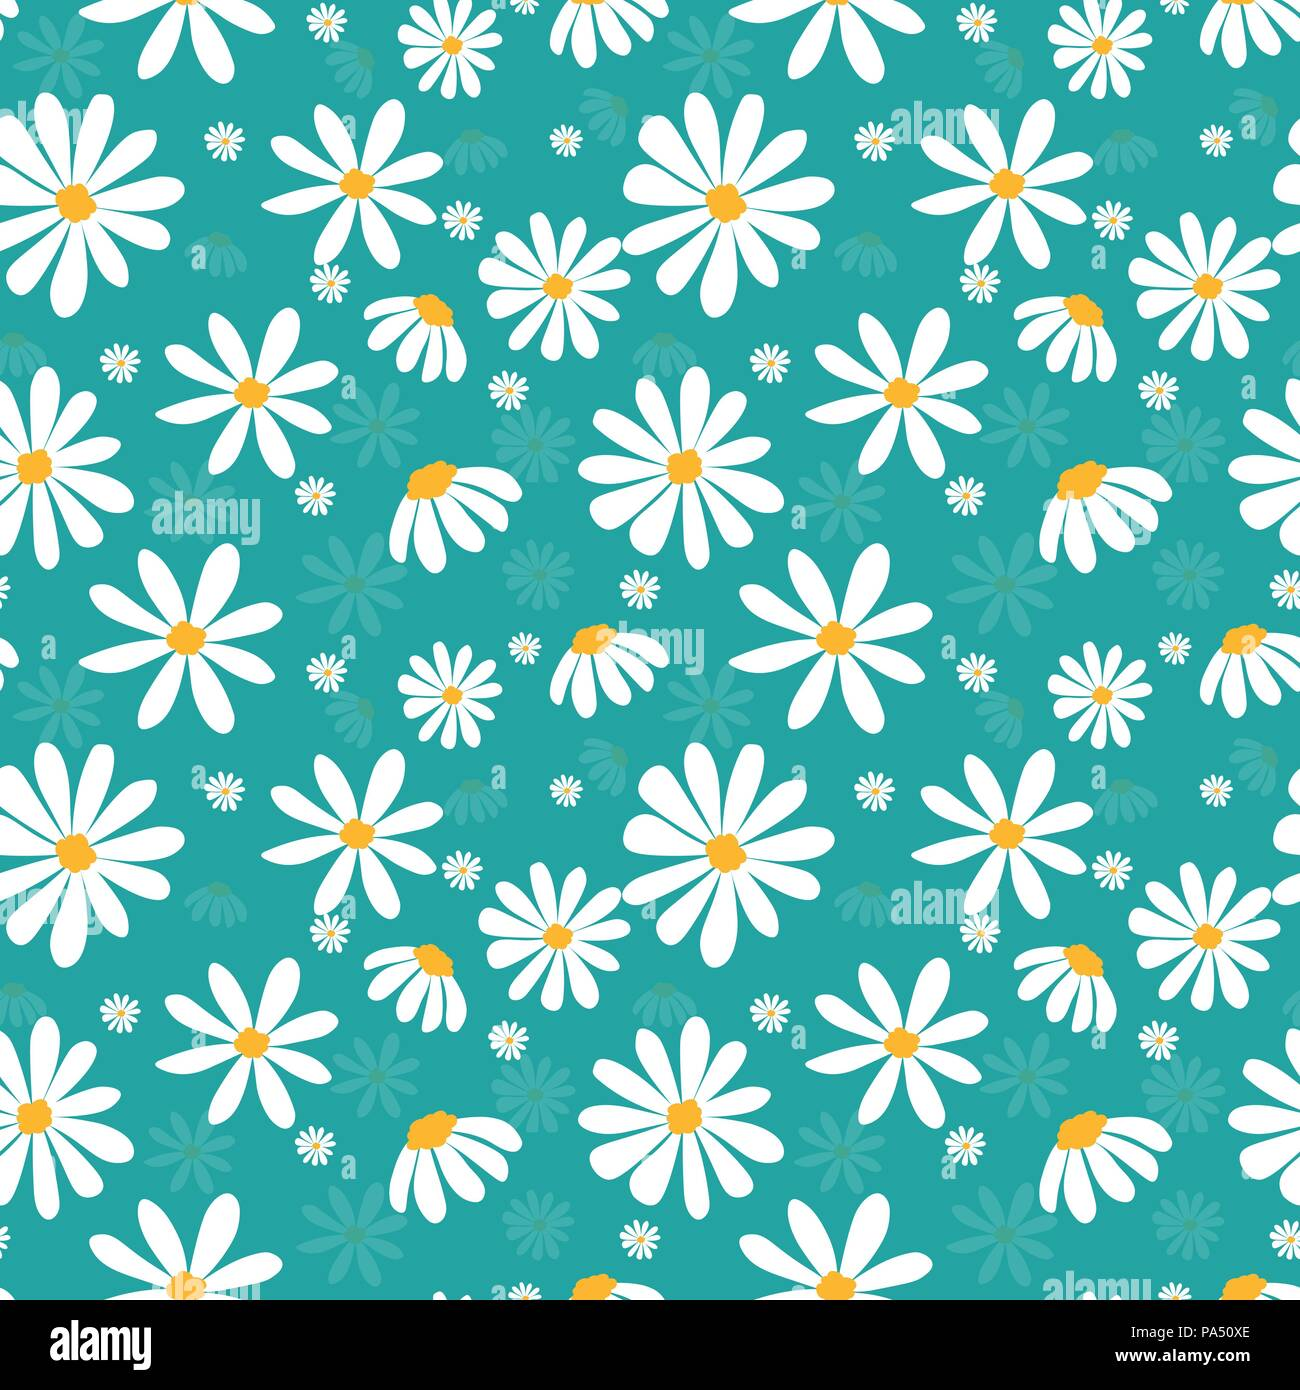 Vector Doodle White Daisy Flower Pattern On Pastel Mint Green